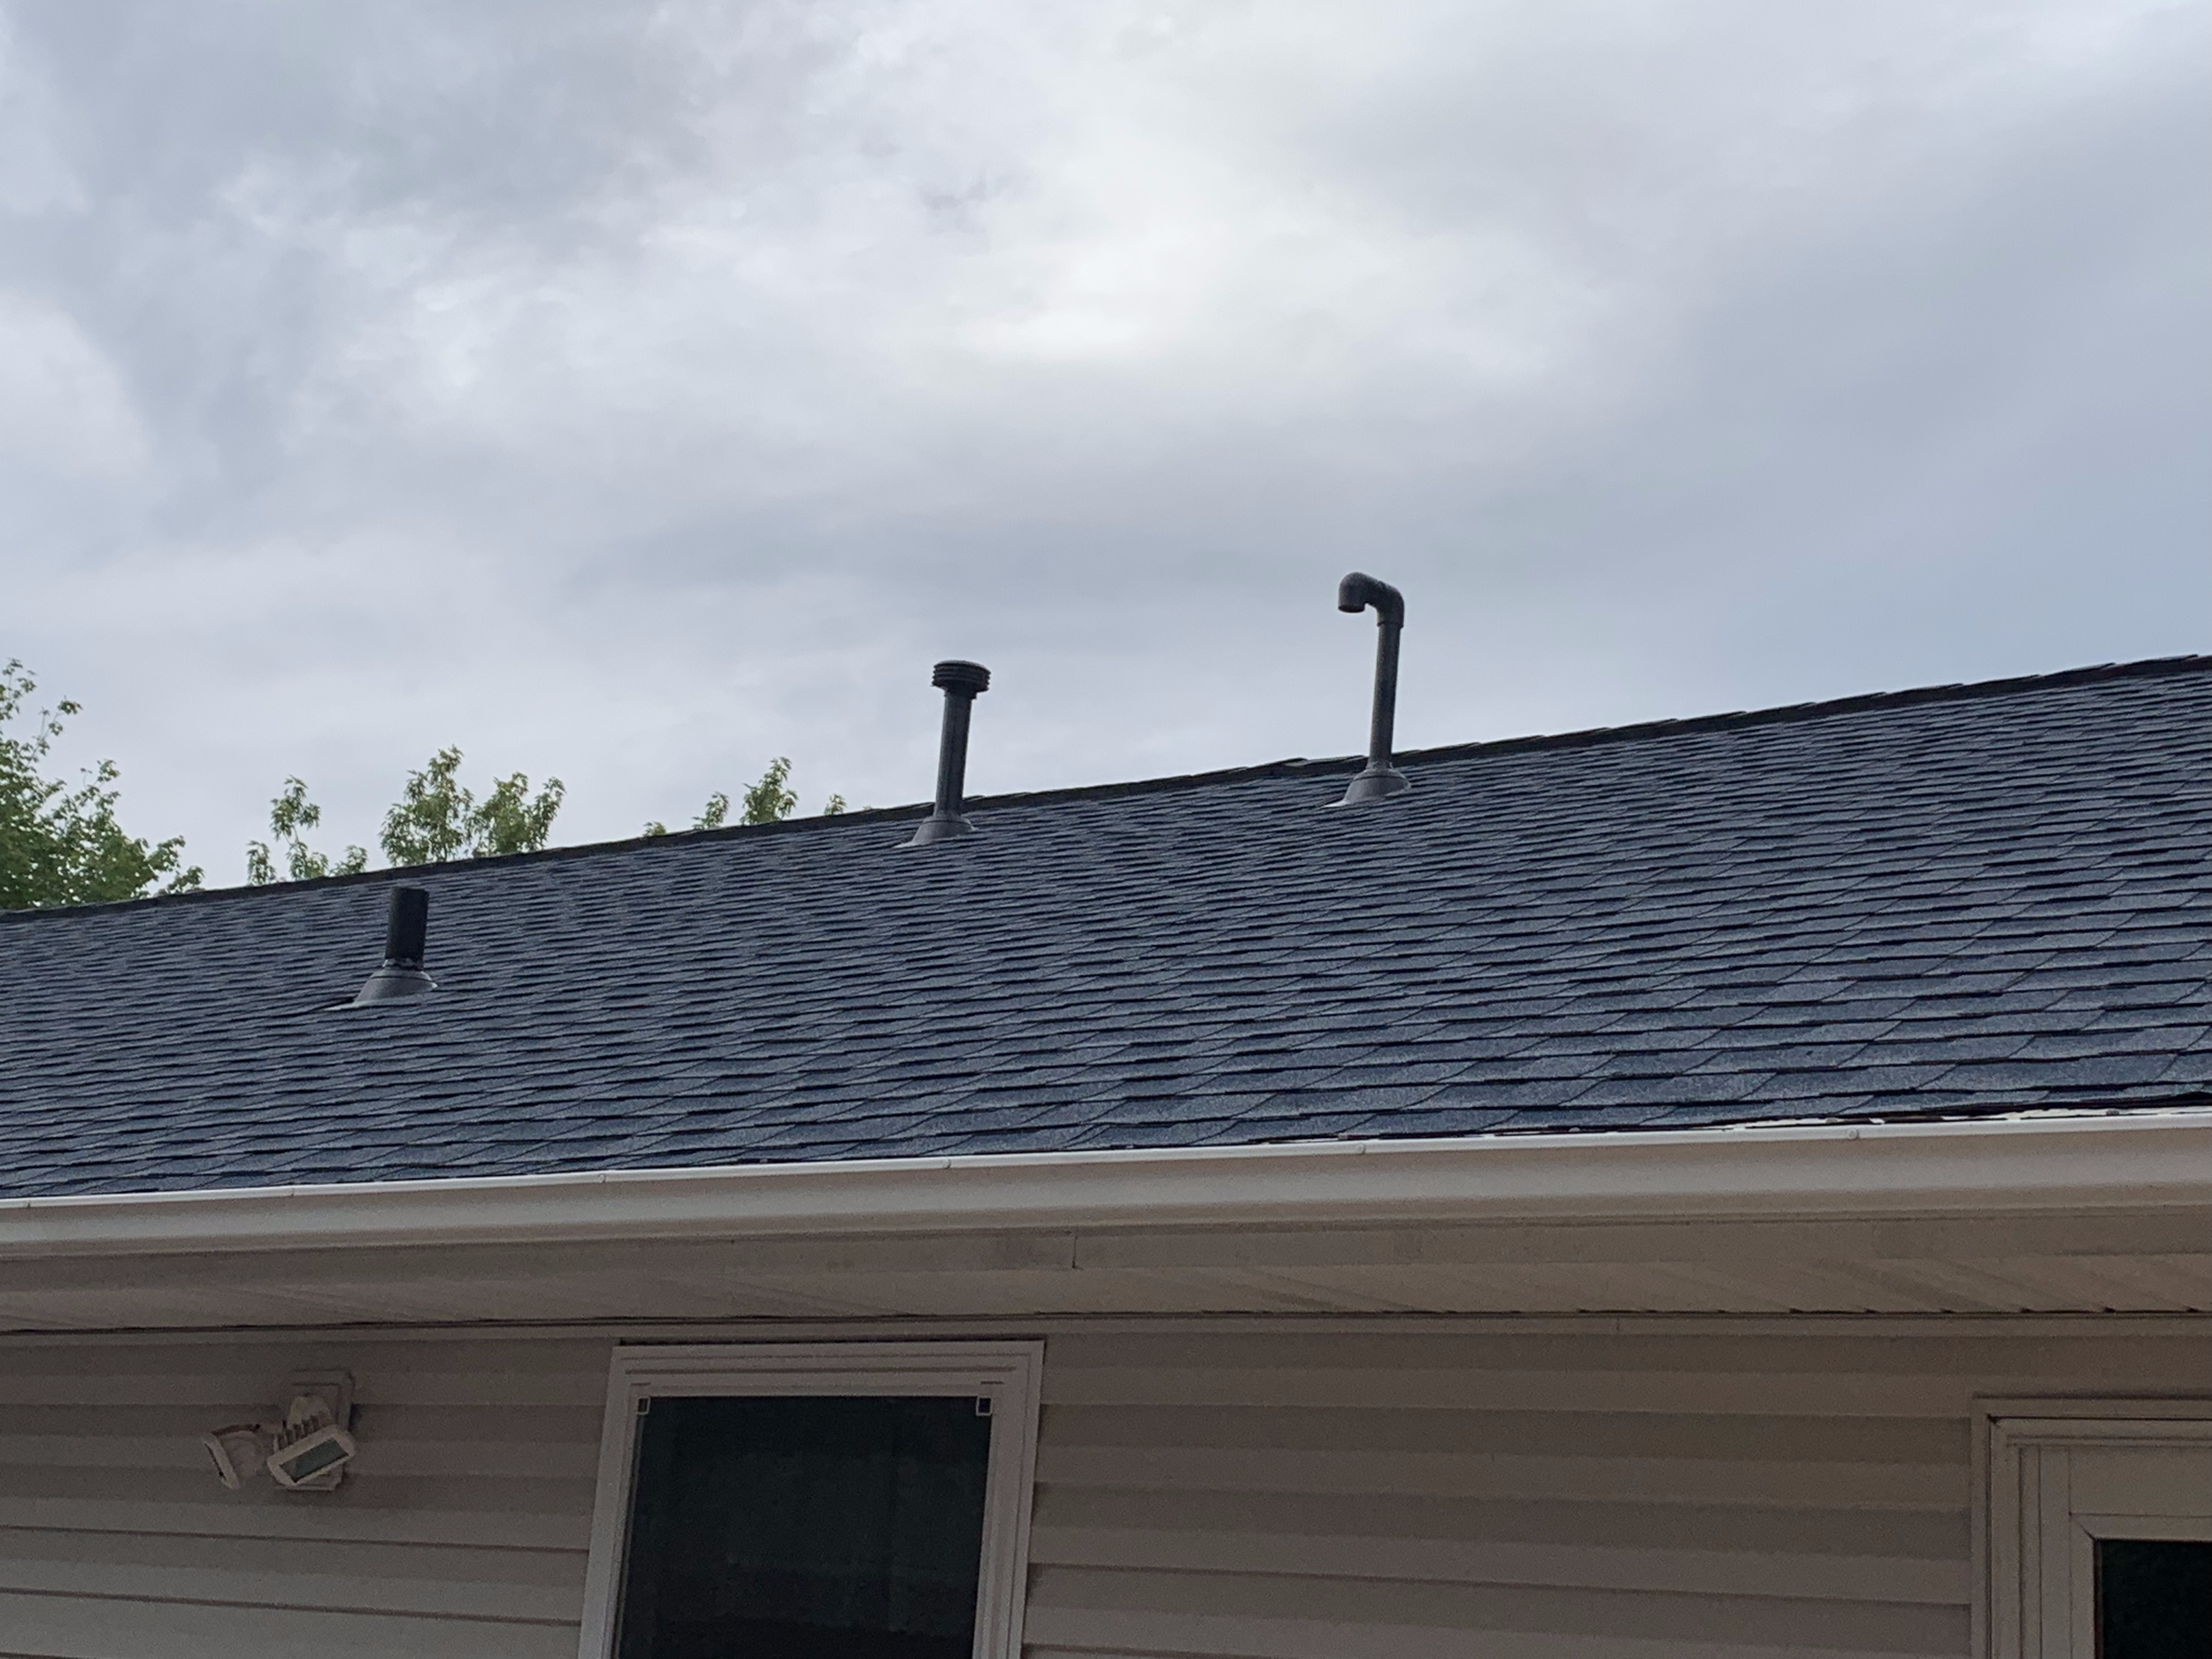 No more rot - this roof will last a lifetime.